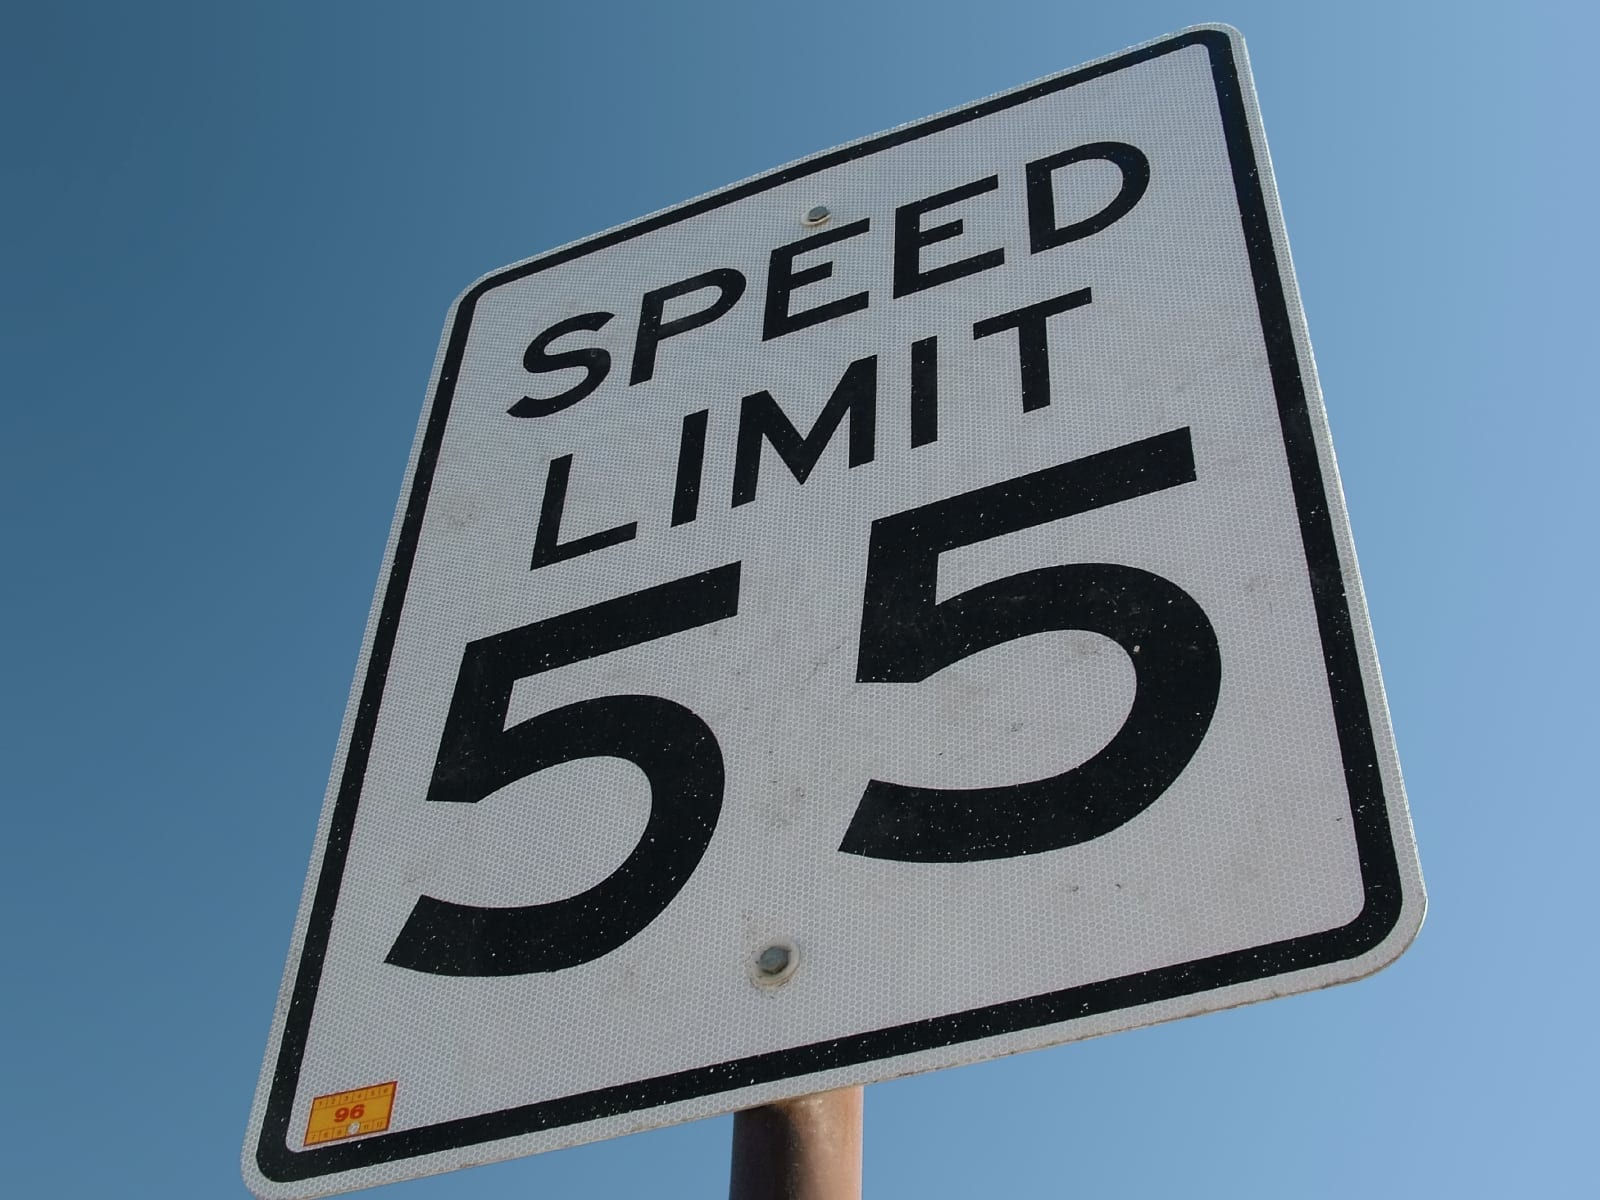 Speed Limit 55 MPH Stock Photo